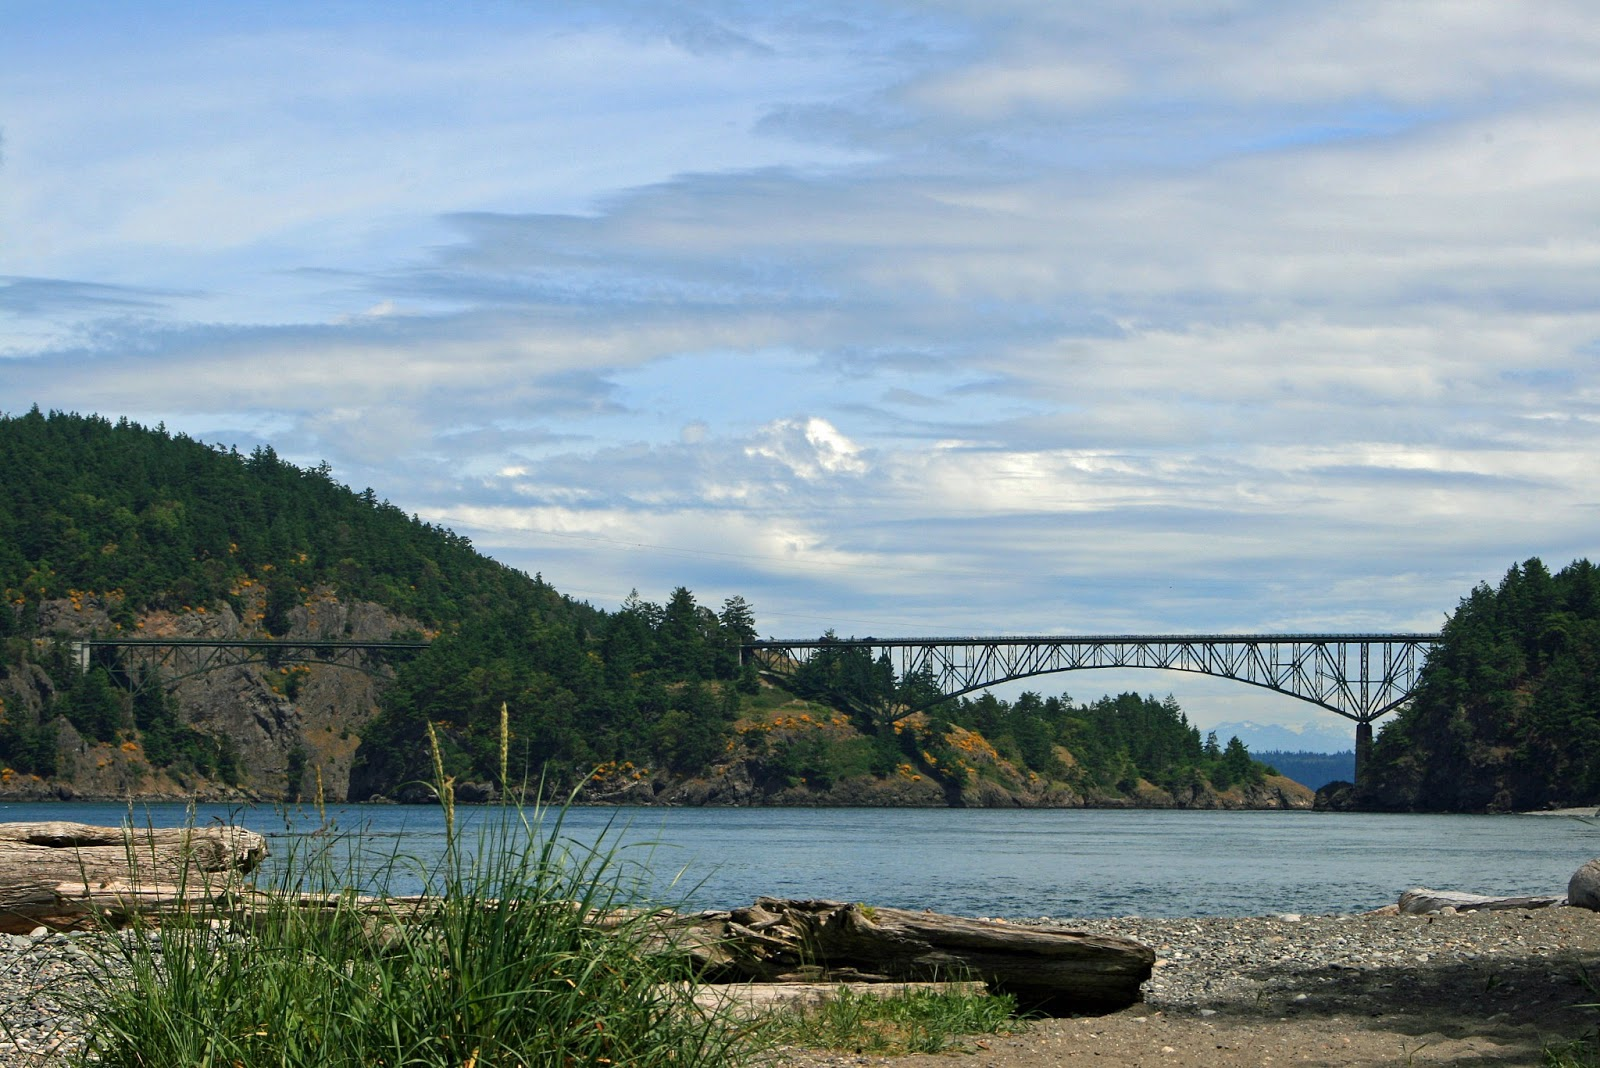 WA-Whidbey Island-Deception Pass 5